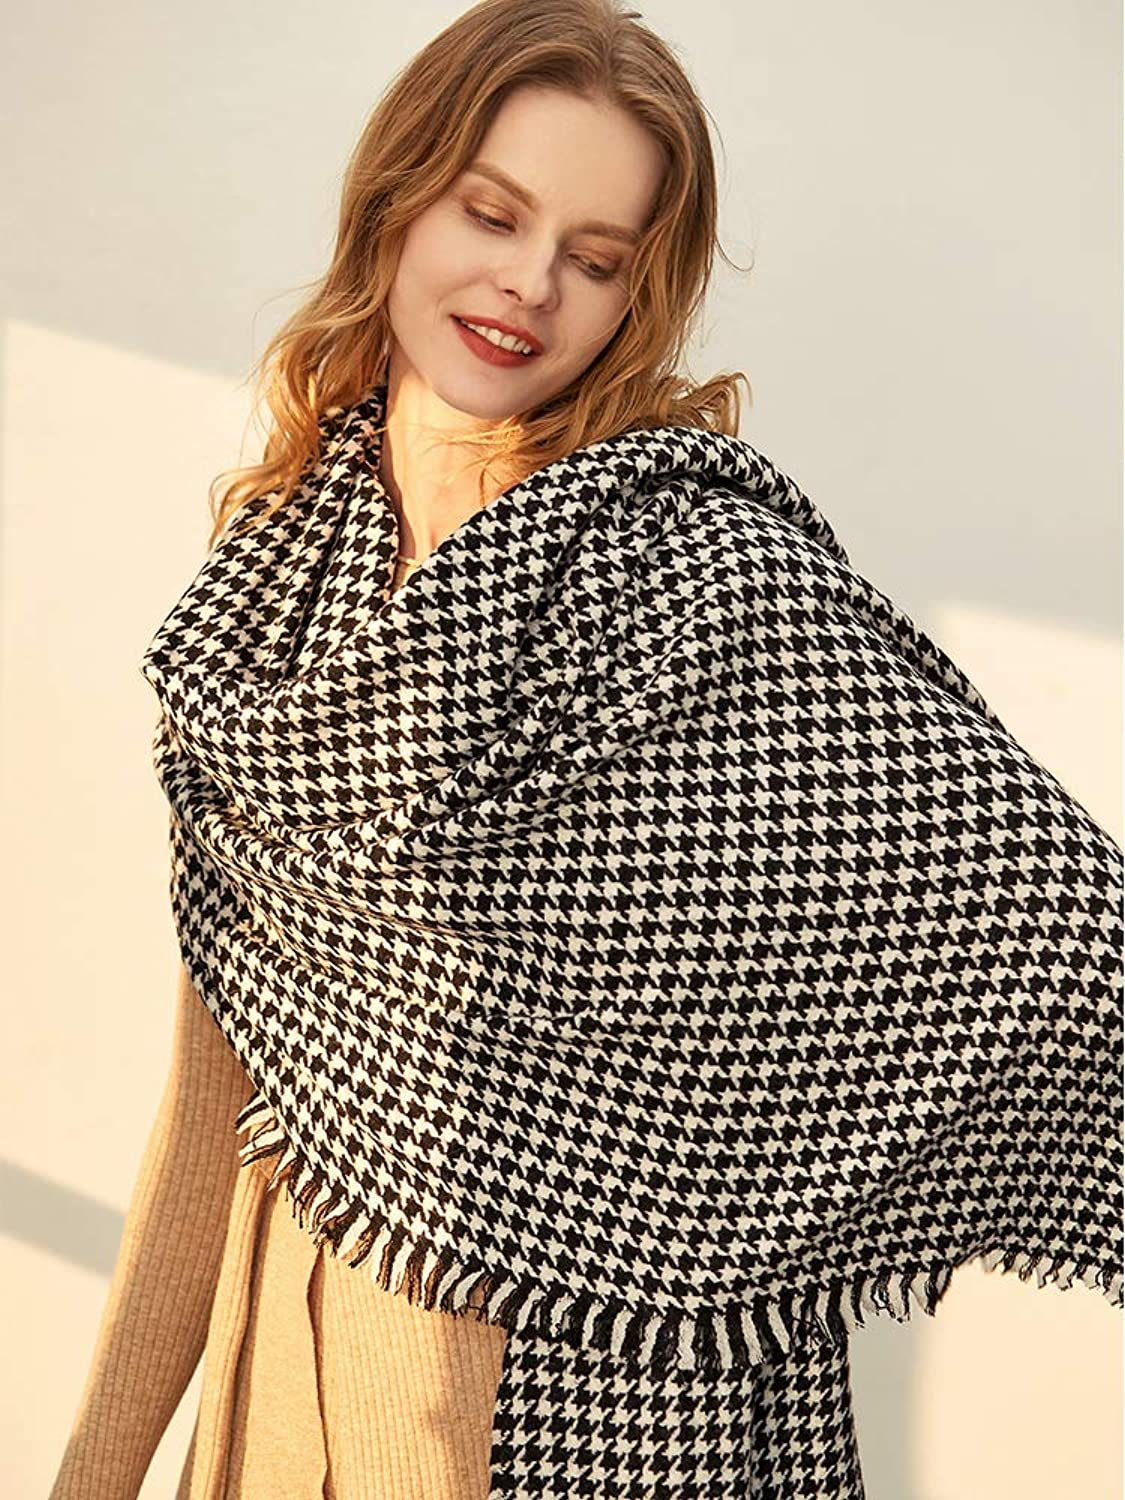 JINGB Home Spring and Autumn Pure Scarf Women's Summer Air Conditioning Shawl Dualuse Classic Houndstooth British Wind